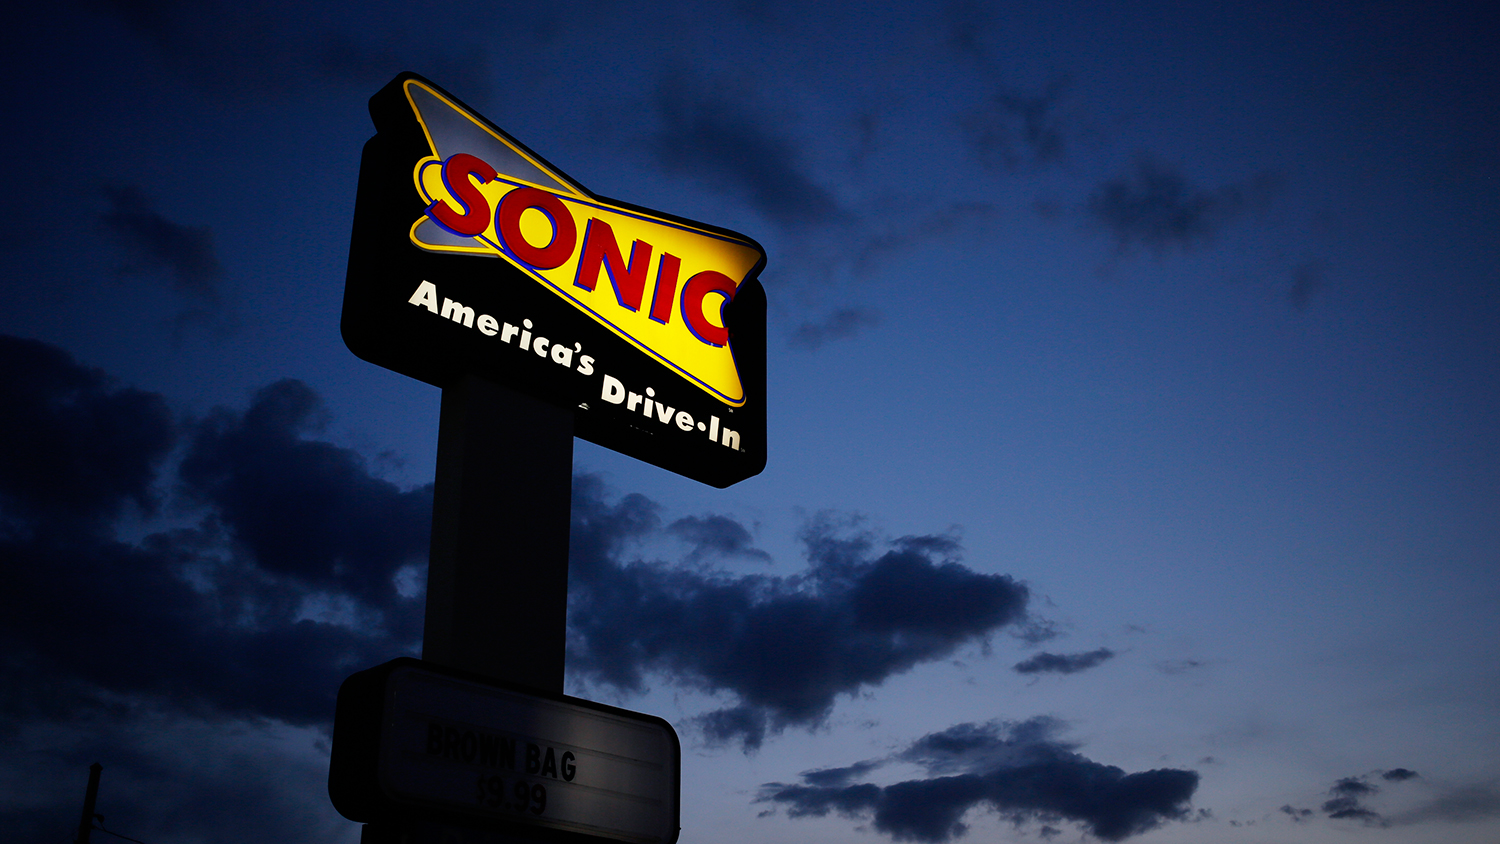 sonic fast food chain